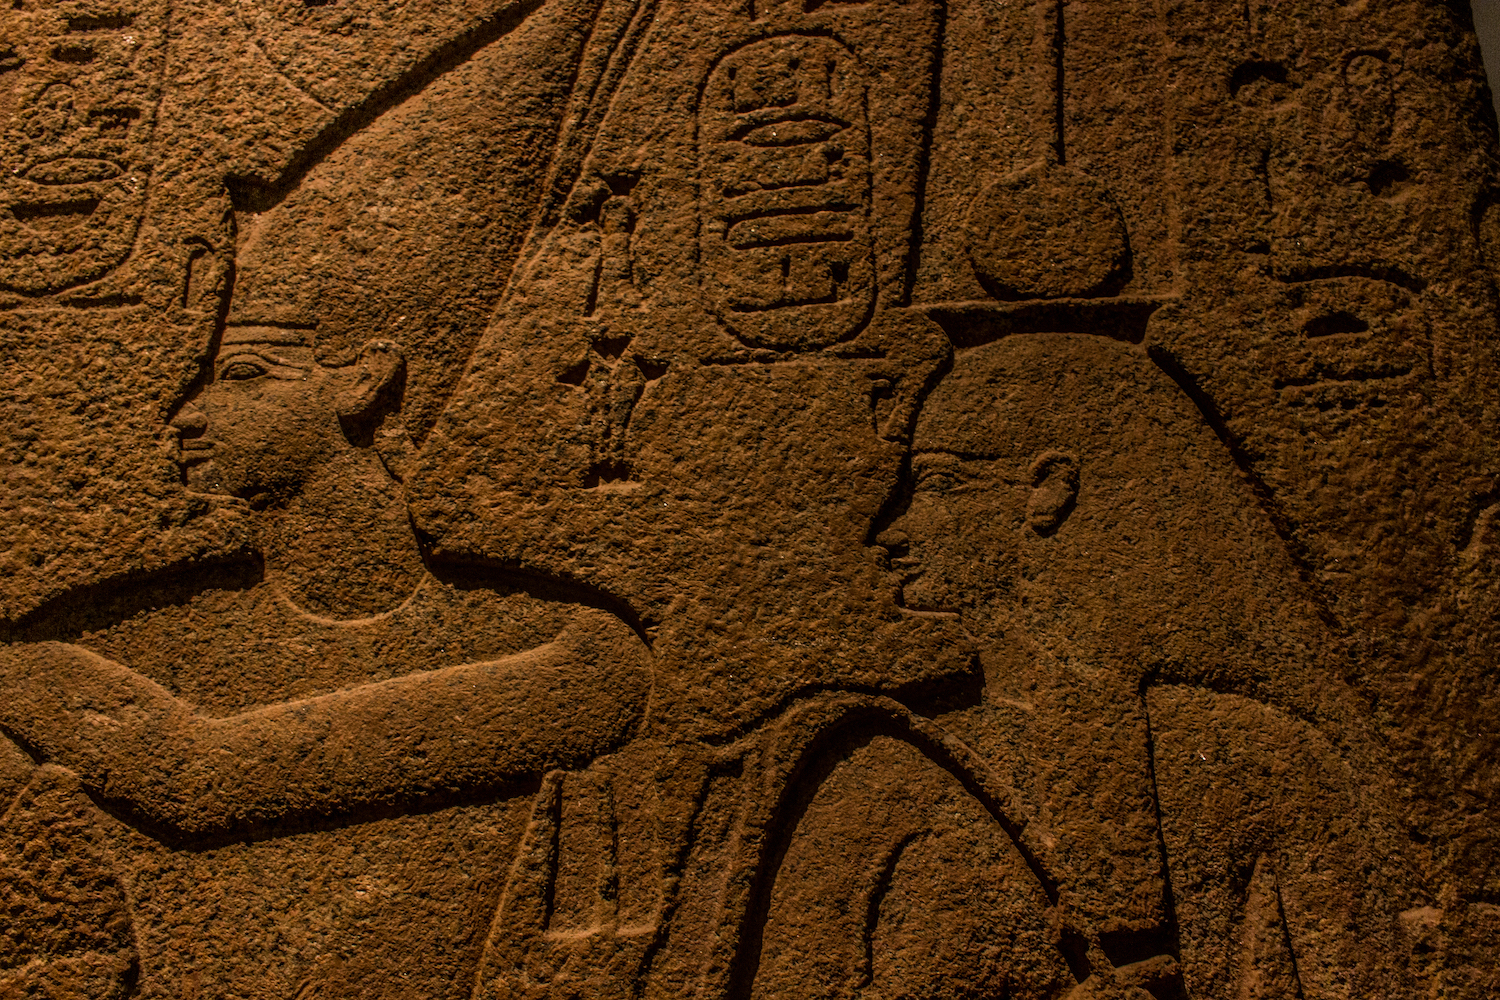 Professional Photography Close-Up Stone Sculpture From Kemet Egypt Of King Osorkon II In British Museum London